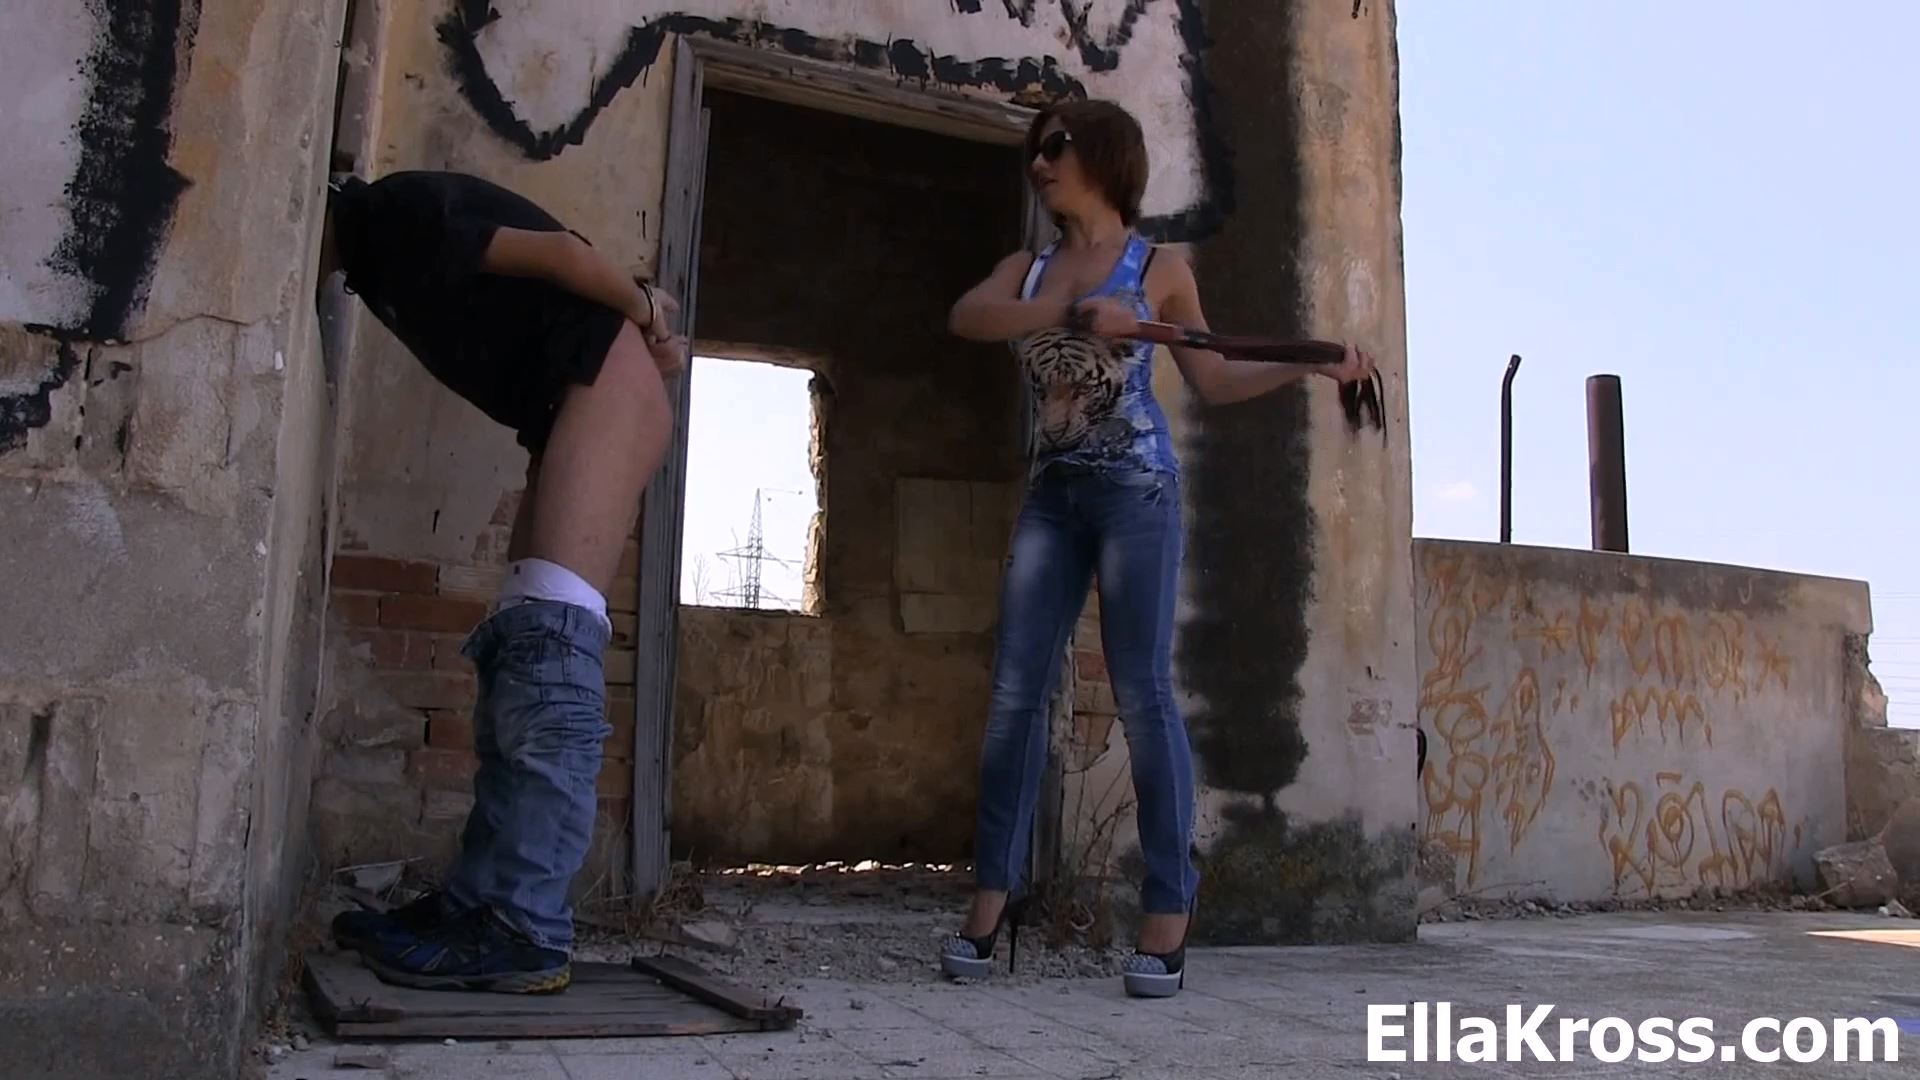 Ella Kross In Scene: Punishing An Incompetent Employee - ELLAKROSS - FULL HD/1080p/MP4